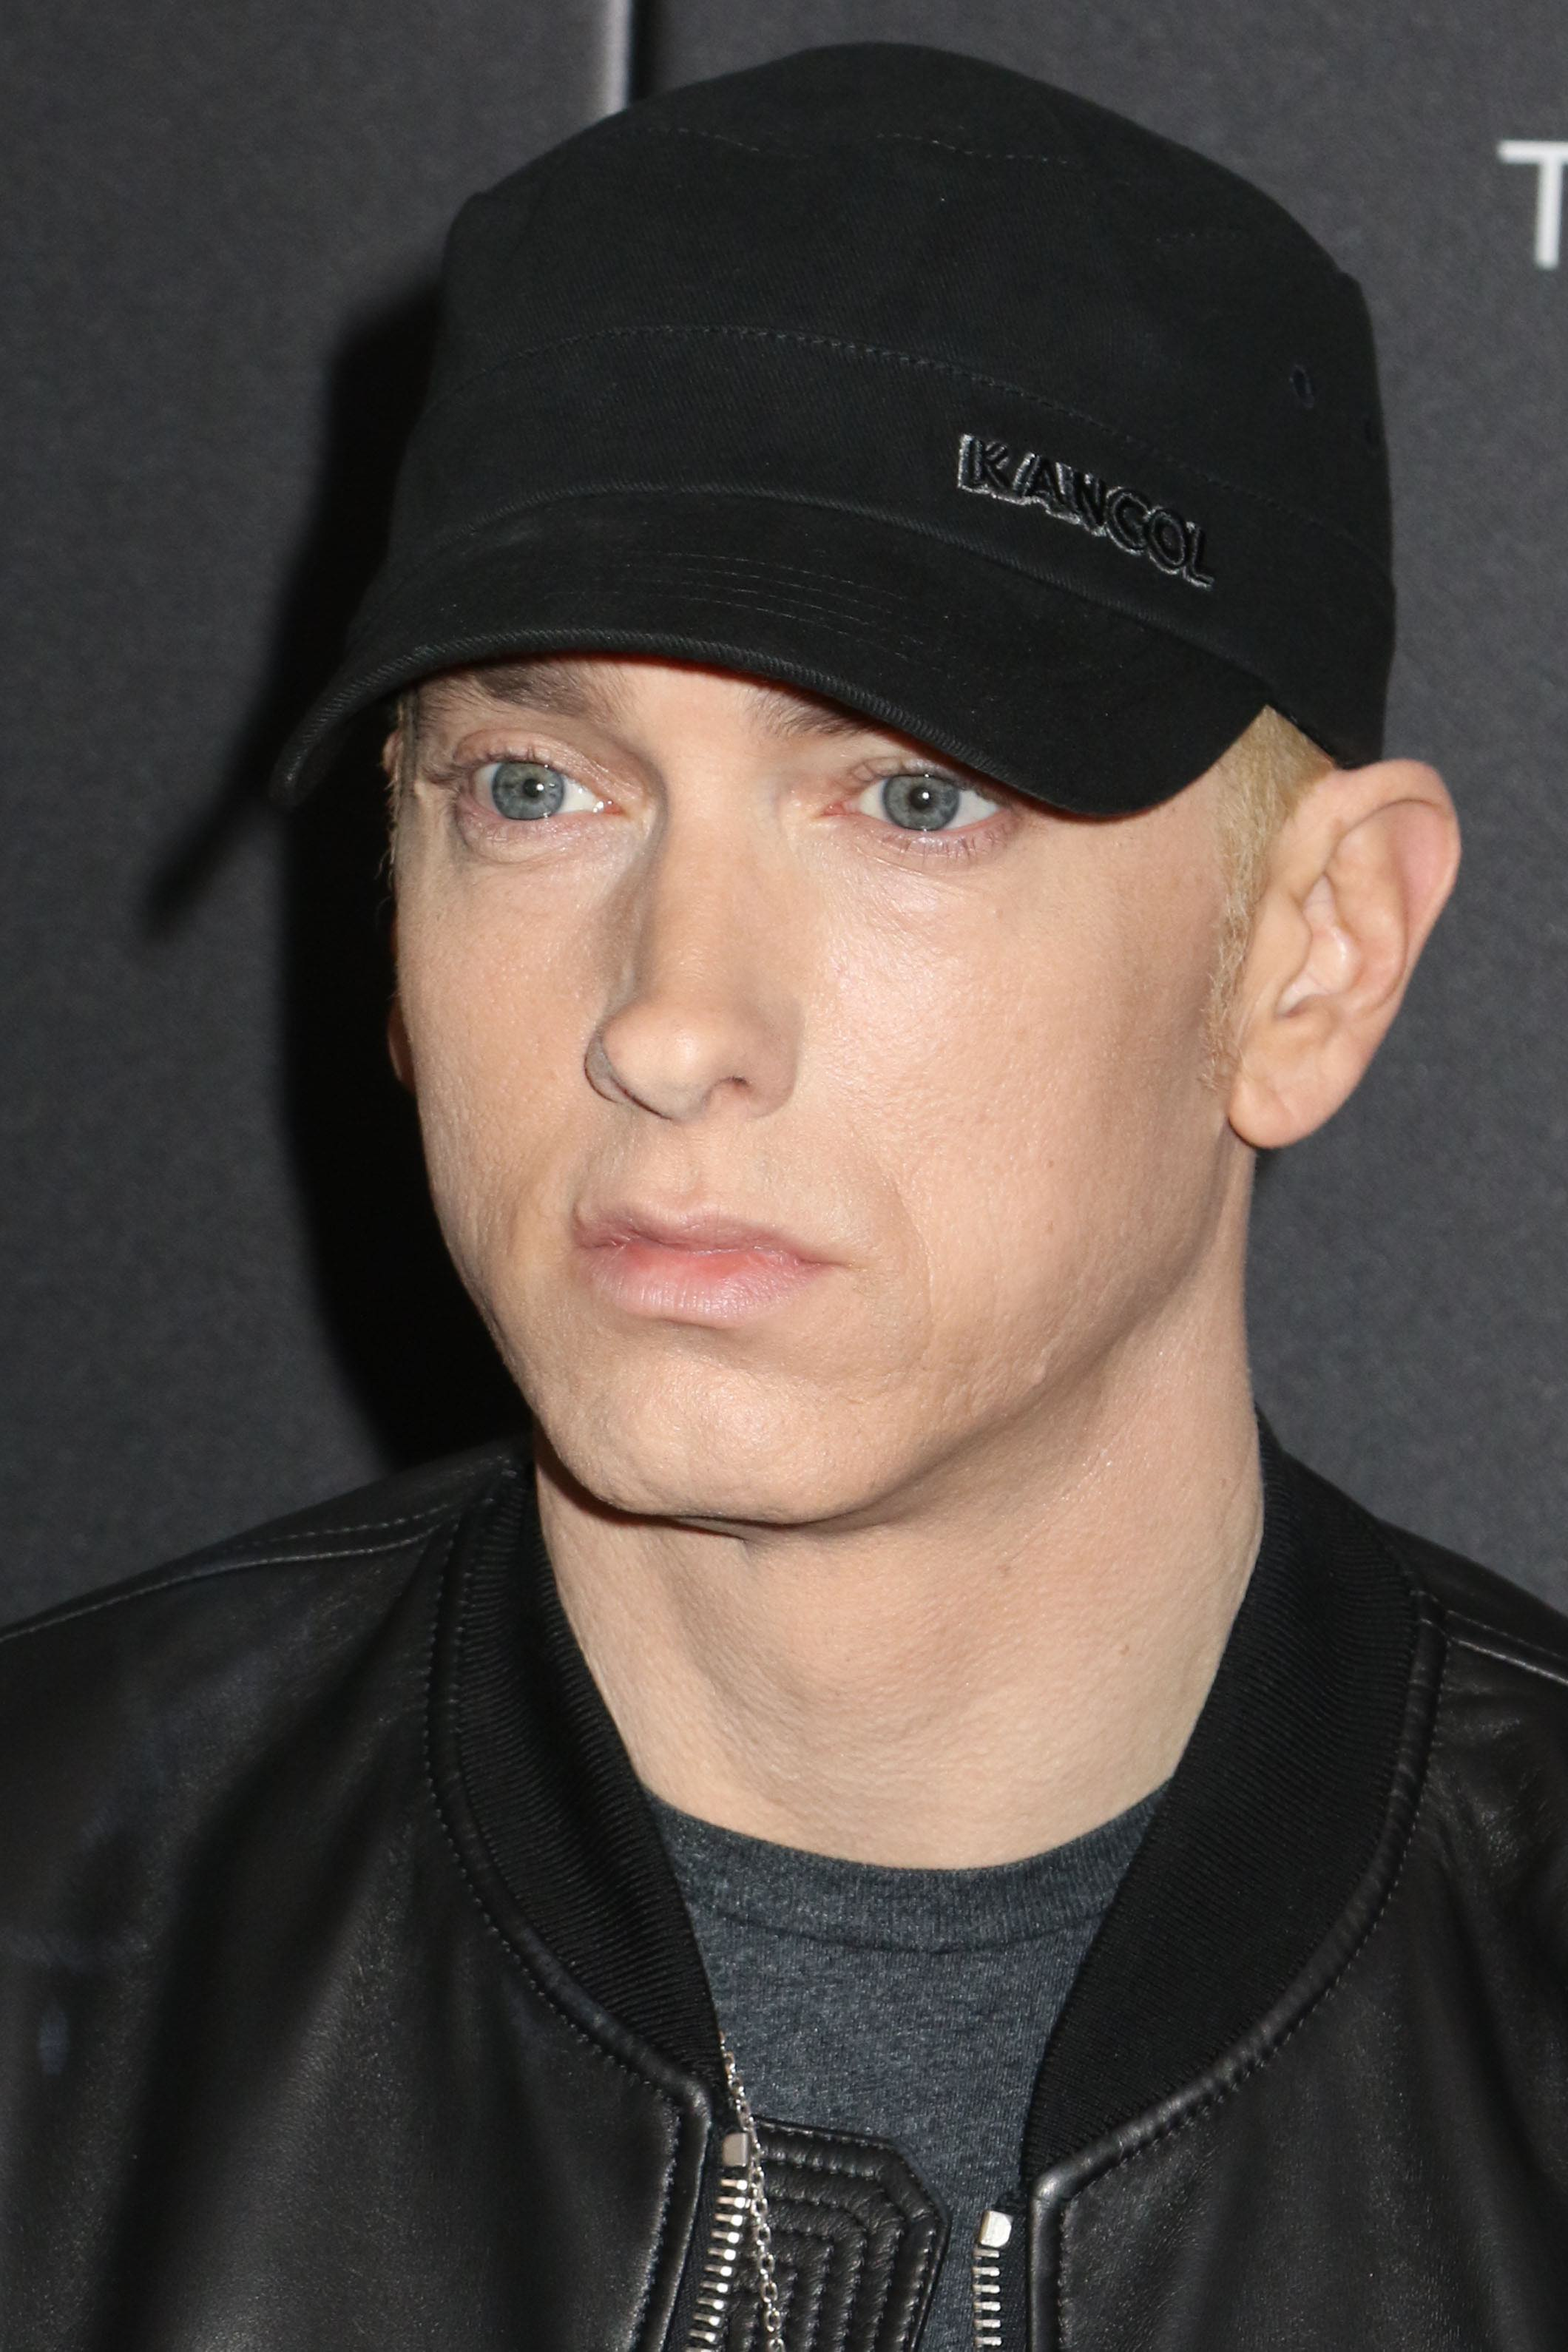 LightWorkers Eminem's 'River,' Details His Painful Experience with Abortion.